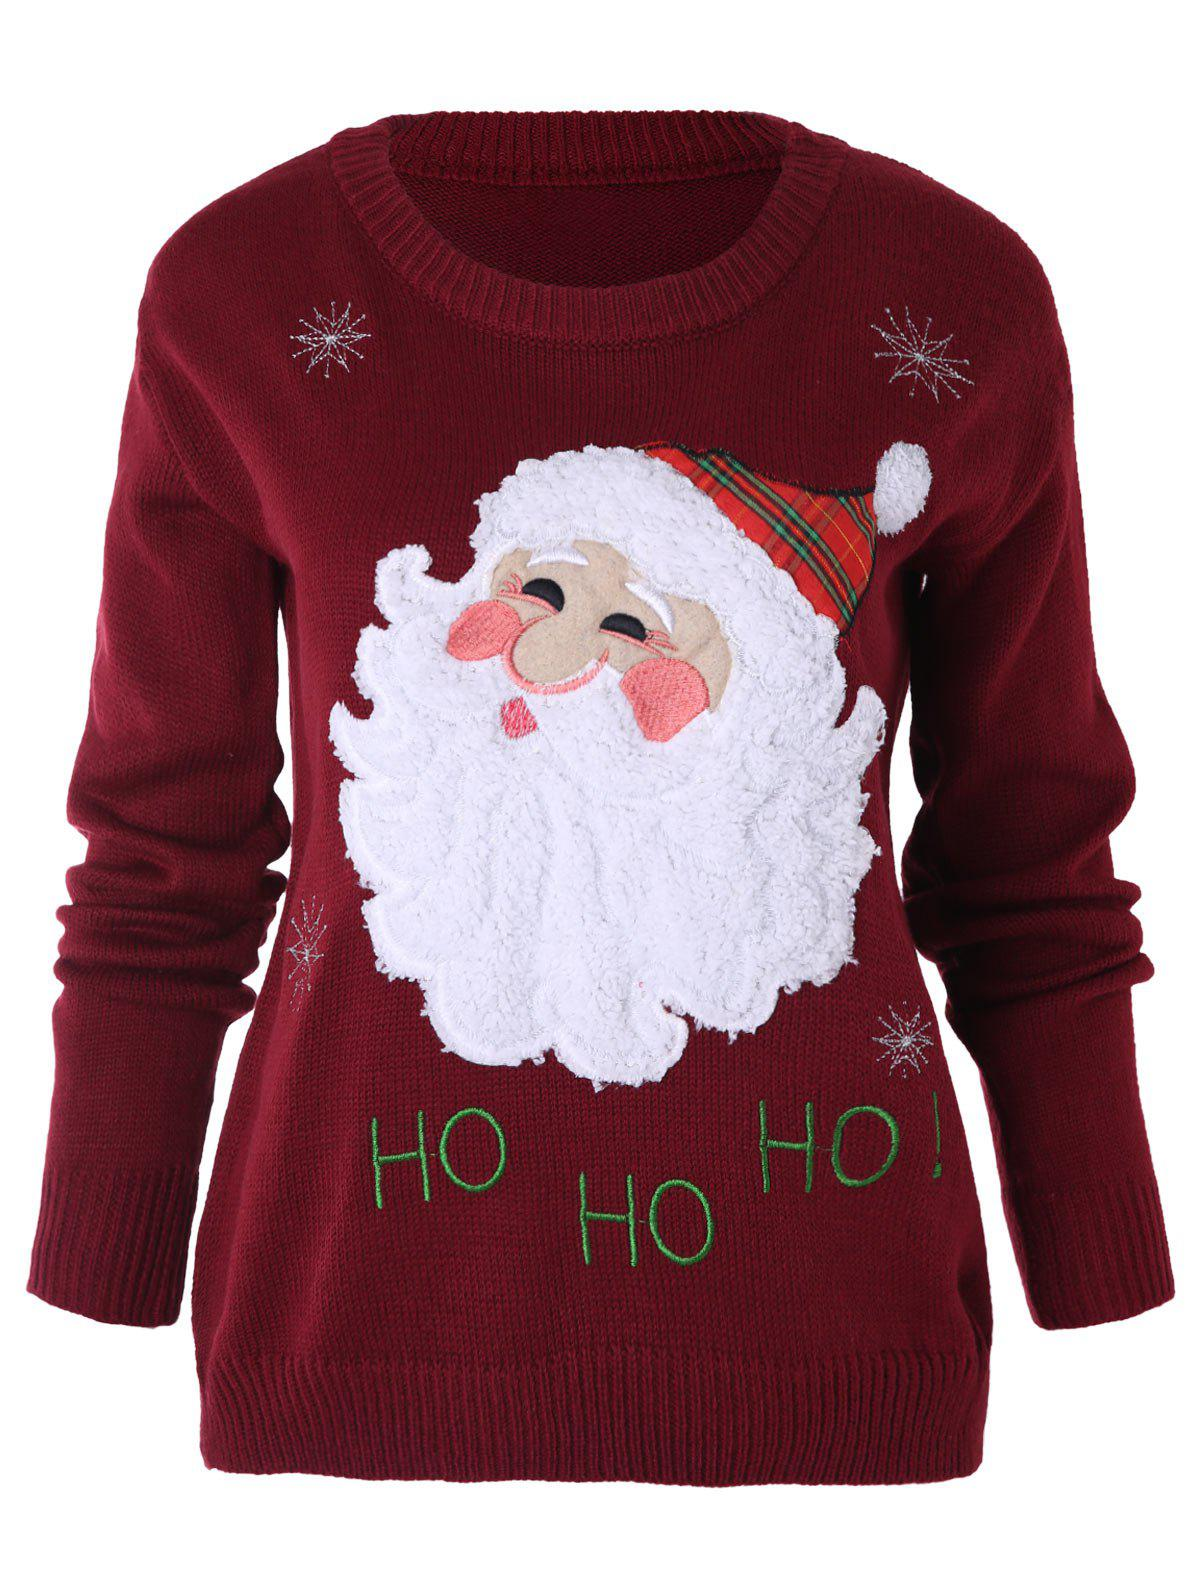 Store Santa Claus Pattern Xmas Sweater